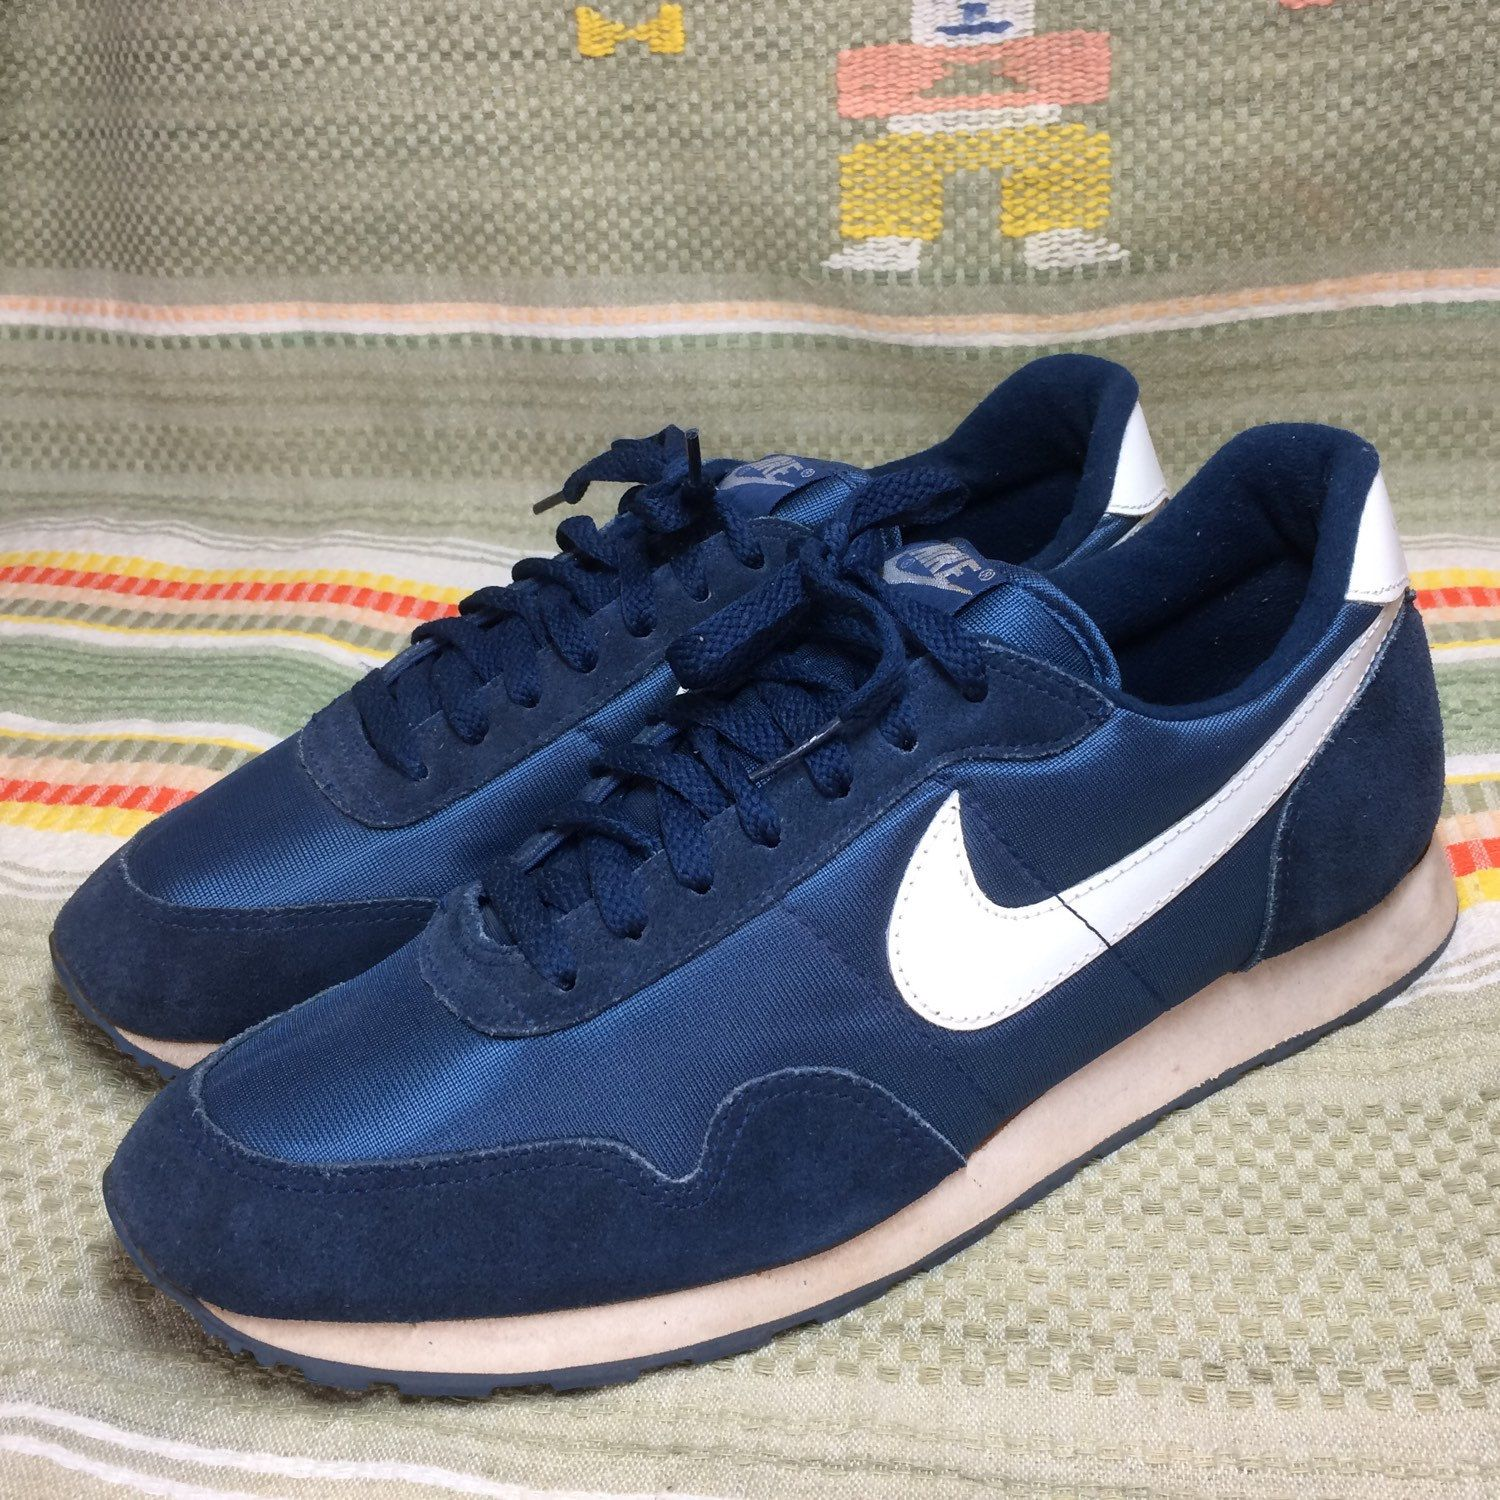 cdf895995f175 1980's Nike Bravo Pegasus running shoes trainers Sneakers size 11 ...